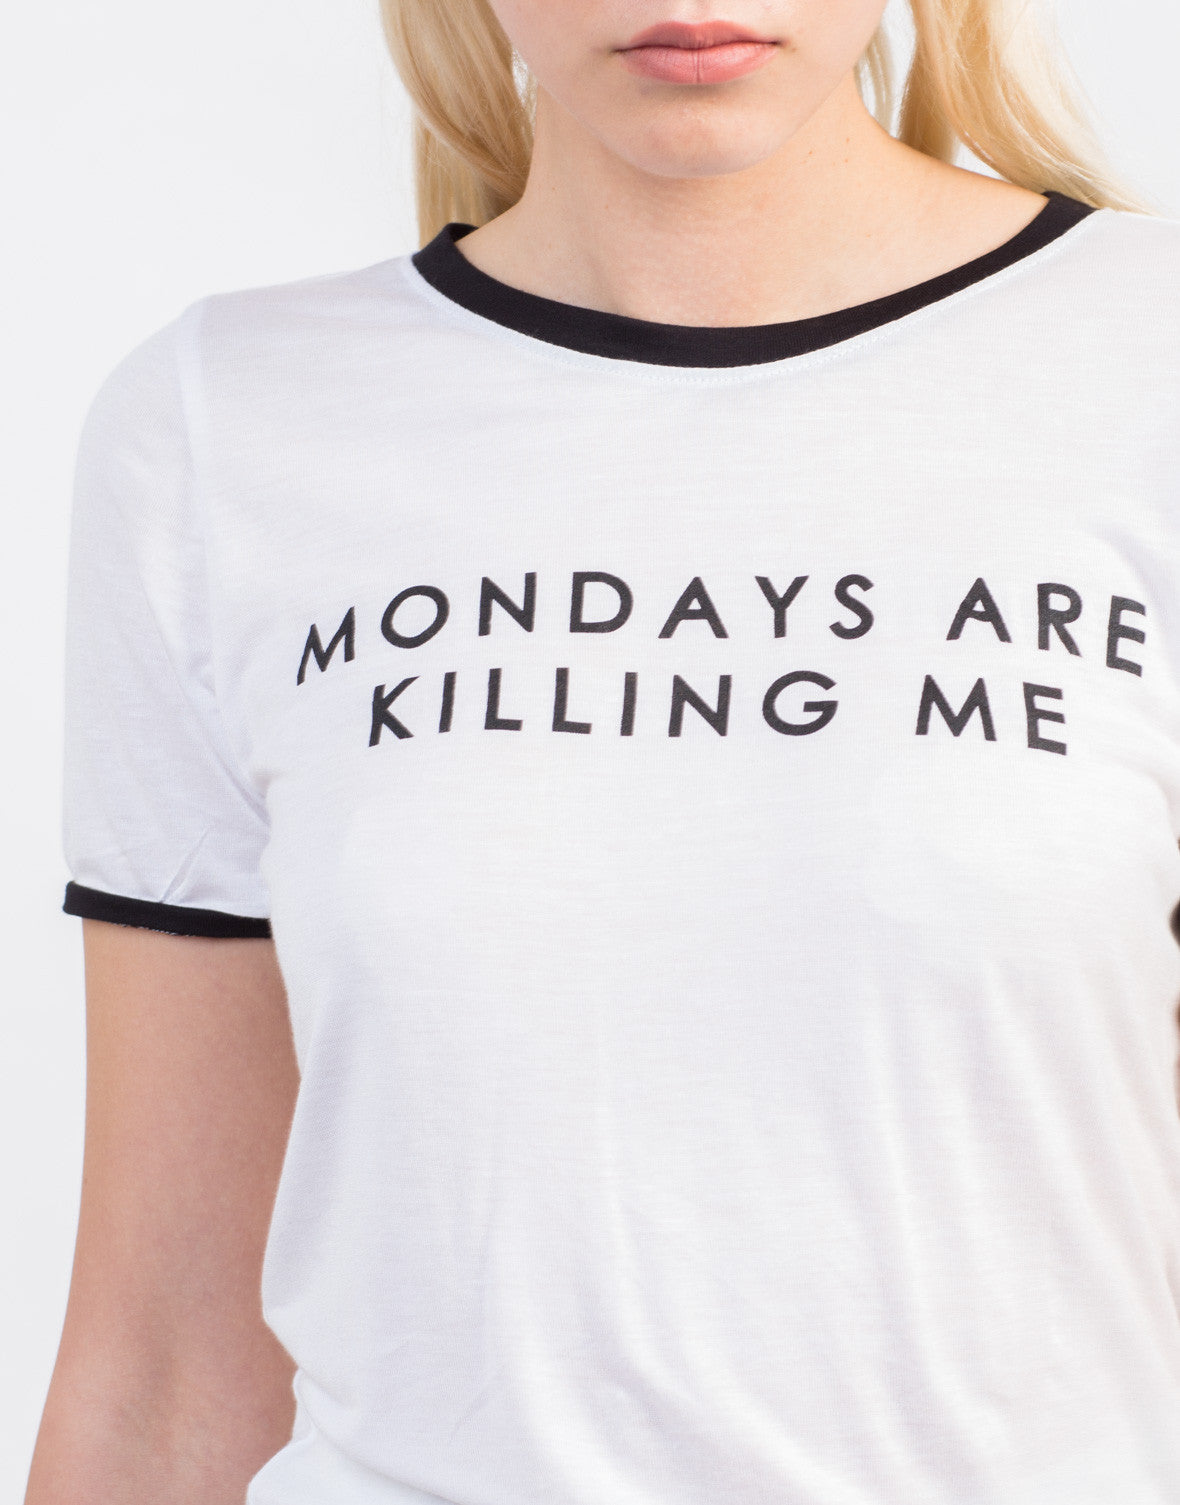 Detail of Monday's Are Killing Me Tee